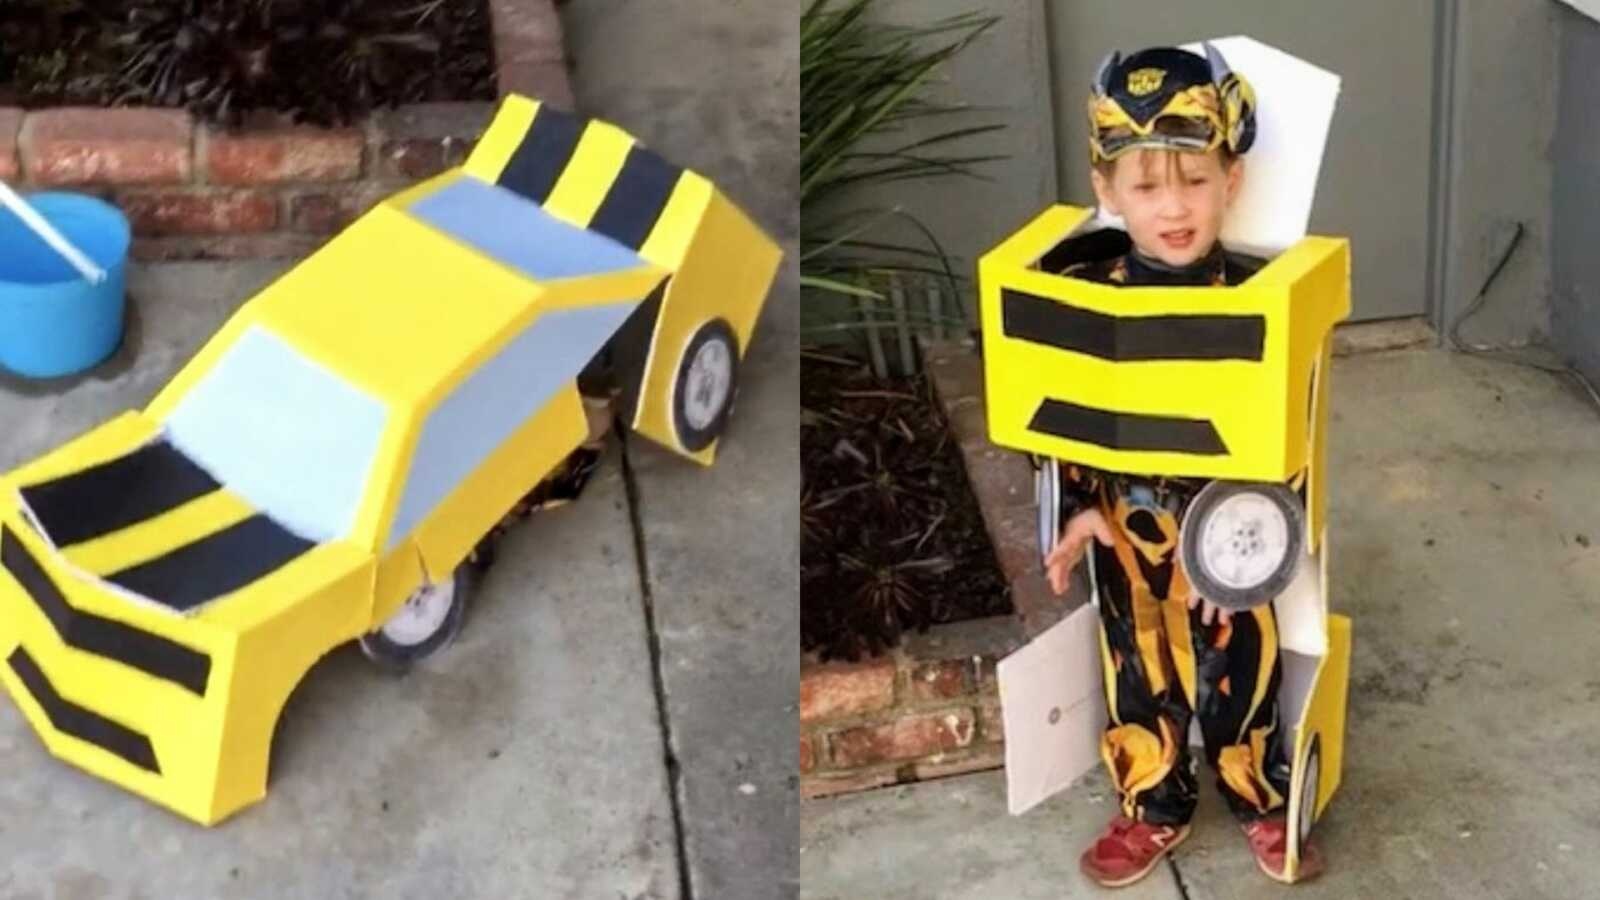 Little boy shows off his DIY Transformers Bumblebee costume before going trick or treating